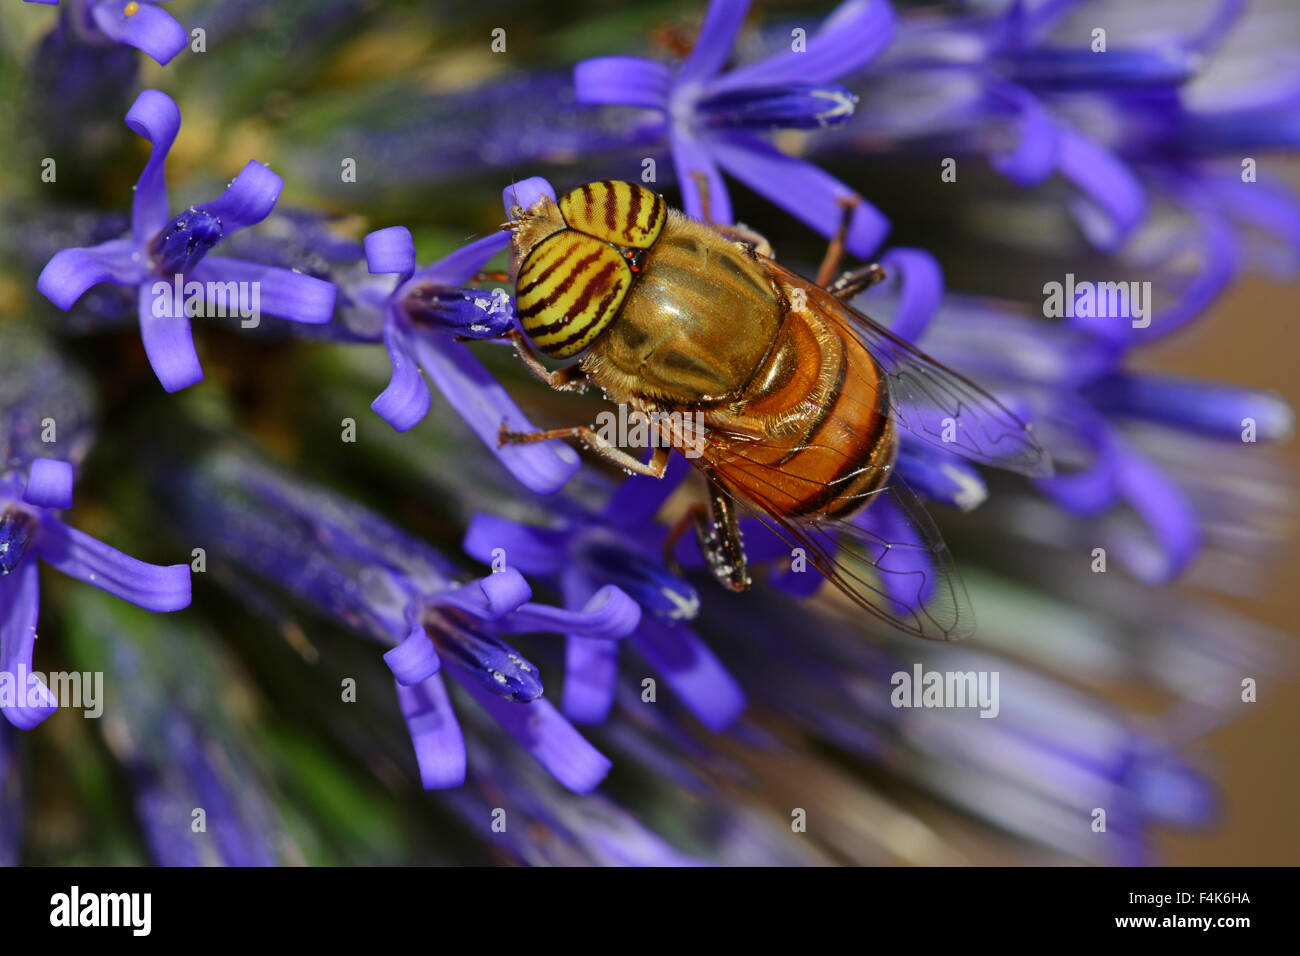 Fly mimics bee - Stock Image